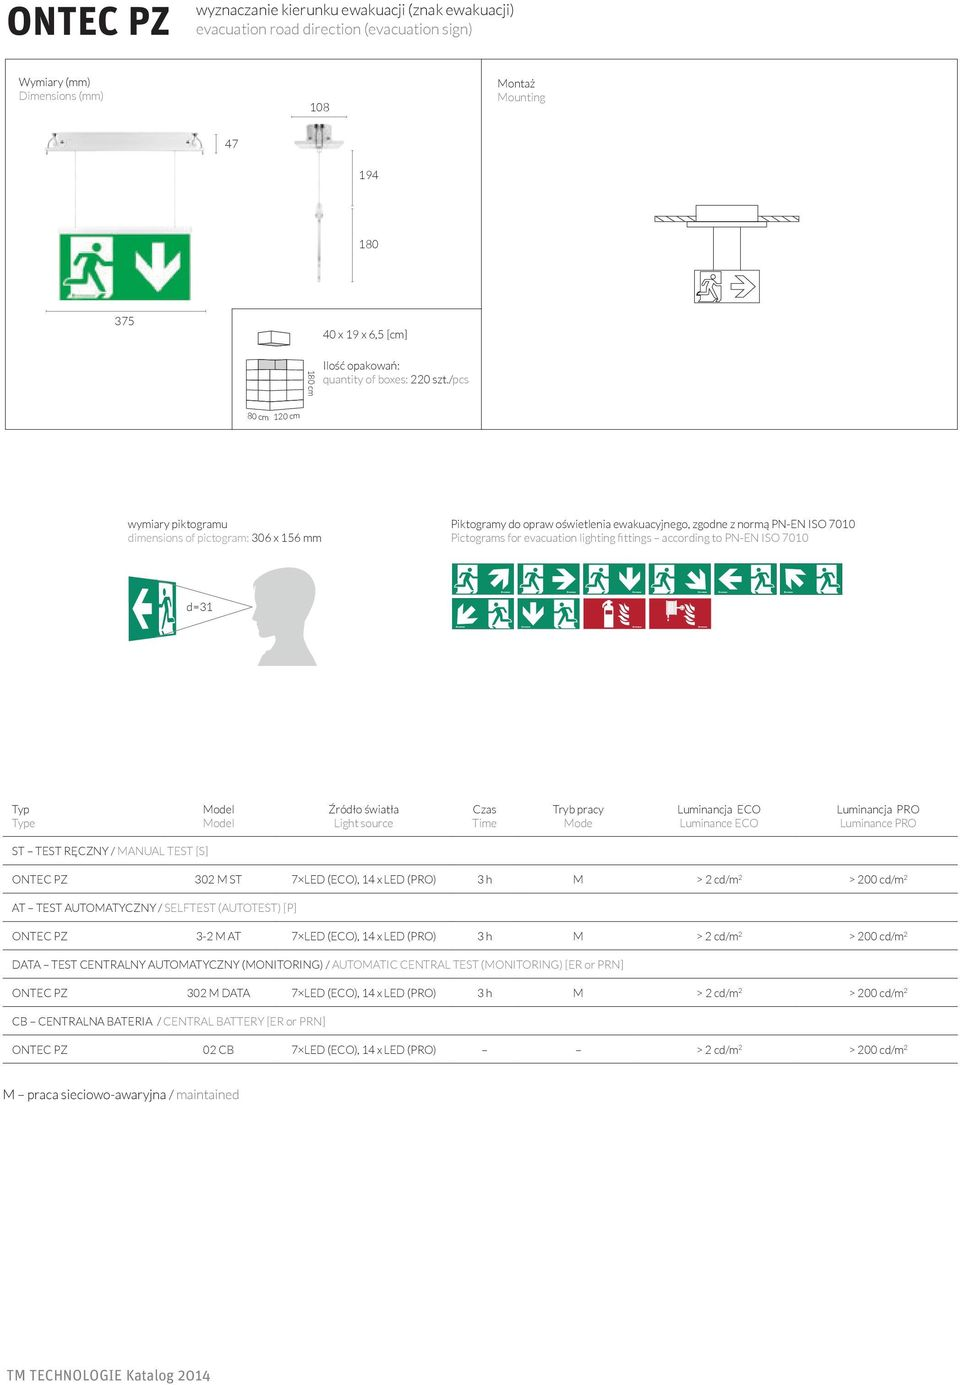 /pcs 80 cm 120 cm wymiary piktogramu dimensions of pictogram: 306 x 156 mm Piktogramy do opraw oświetlenia ewakuacyjnego, zgodne z normą PN-EN ISO 7010 Pictograms for evacuation lighting fittings